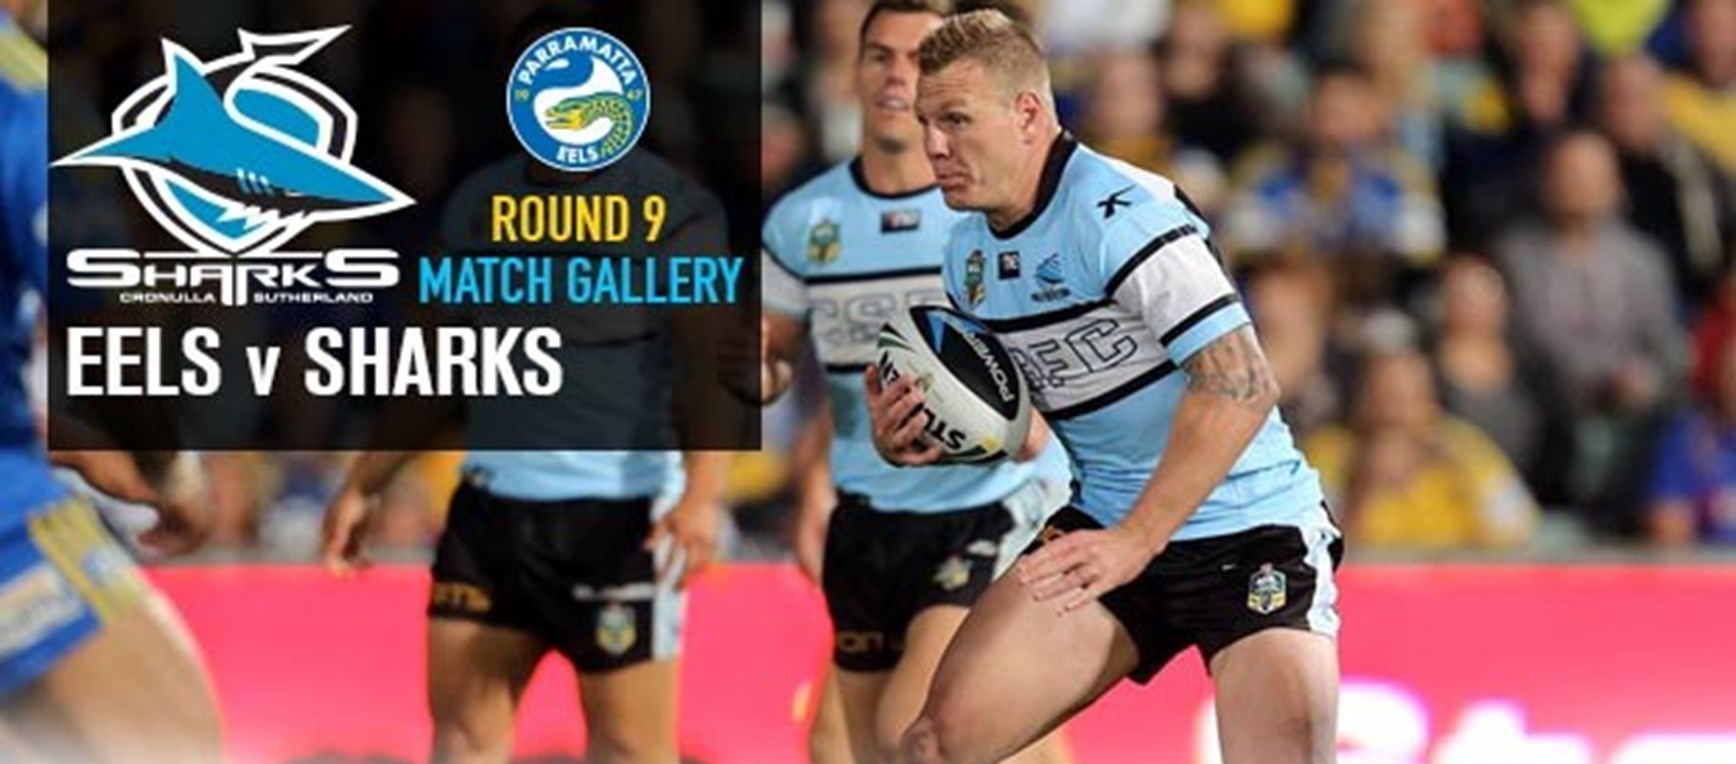 Rd9 Match Gallery - Eels v Sharks